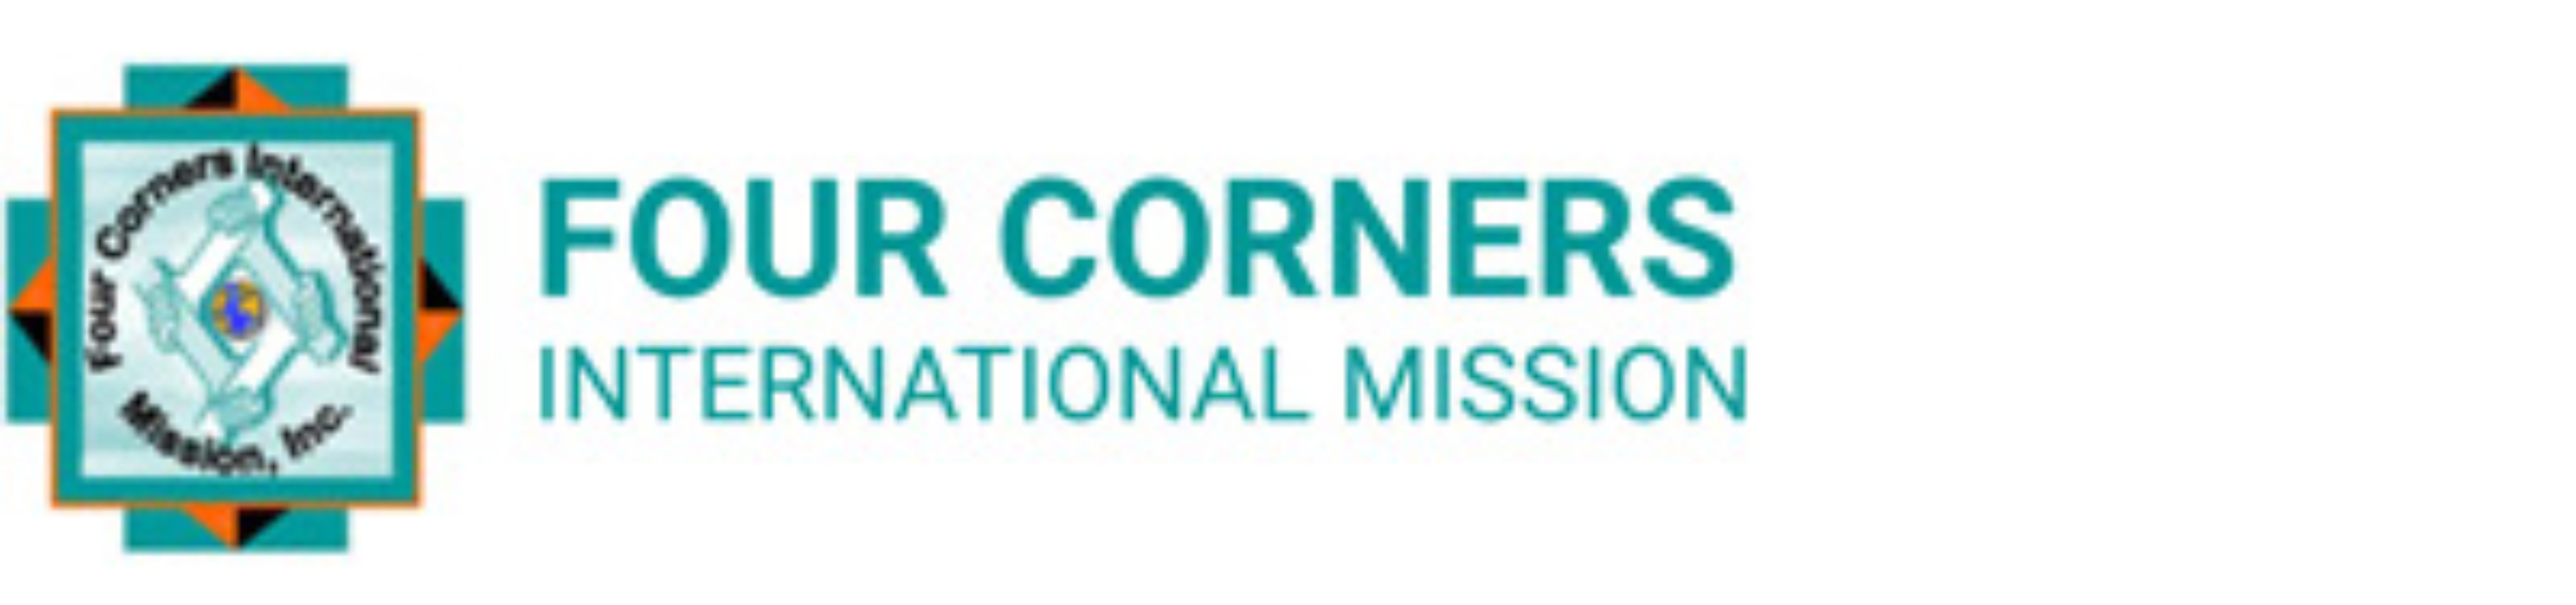 four corners international mission help us break the